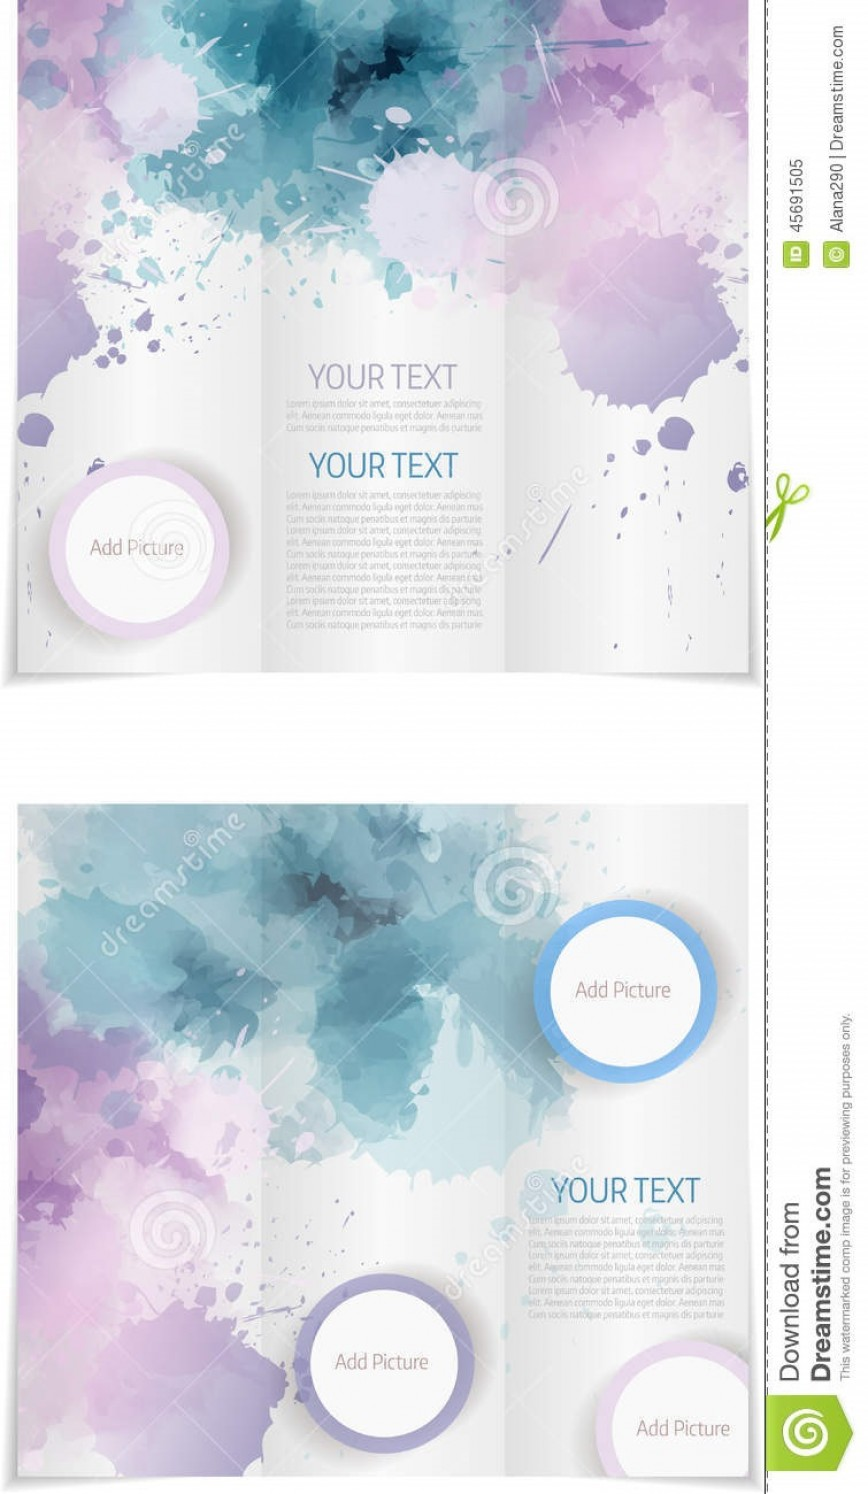 009 Stupendou Publisher Brochure Template Free Inspiration  Tri Fold Microsoft Download Bi868